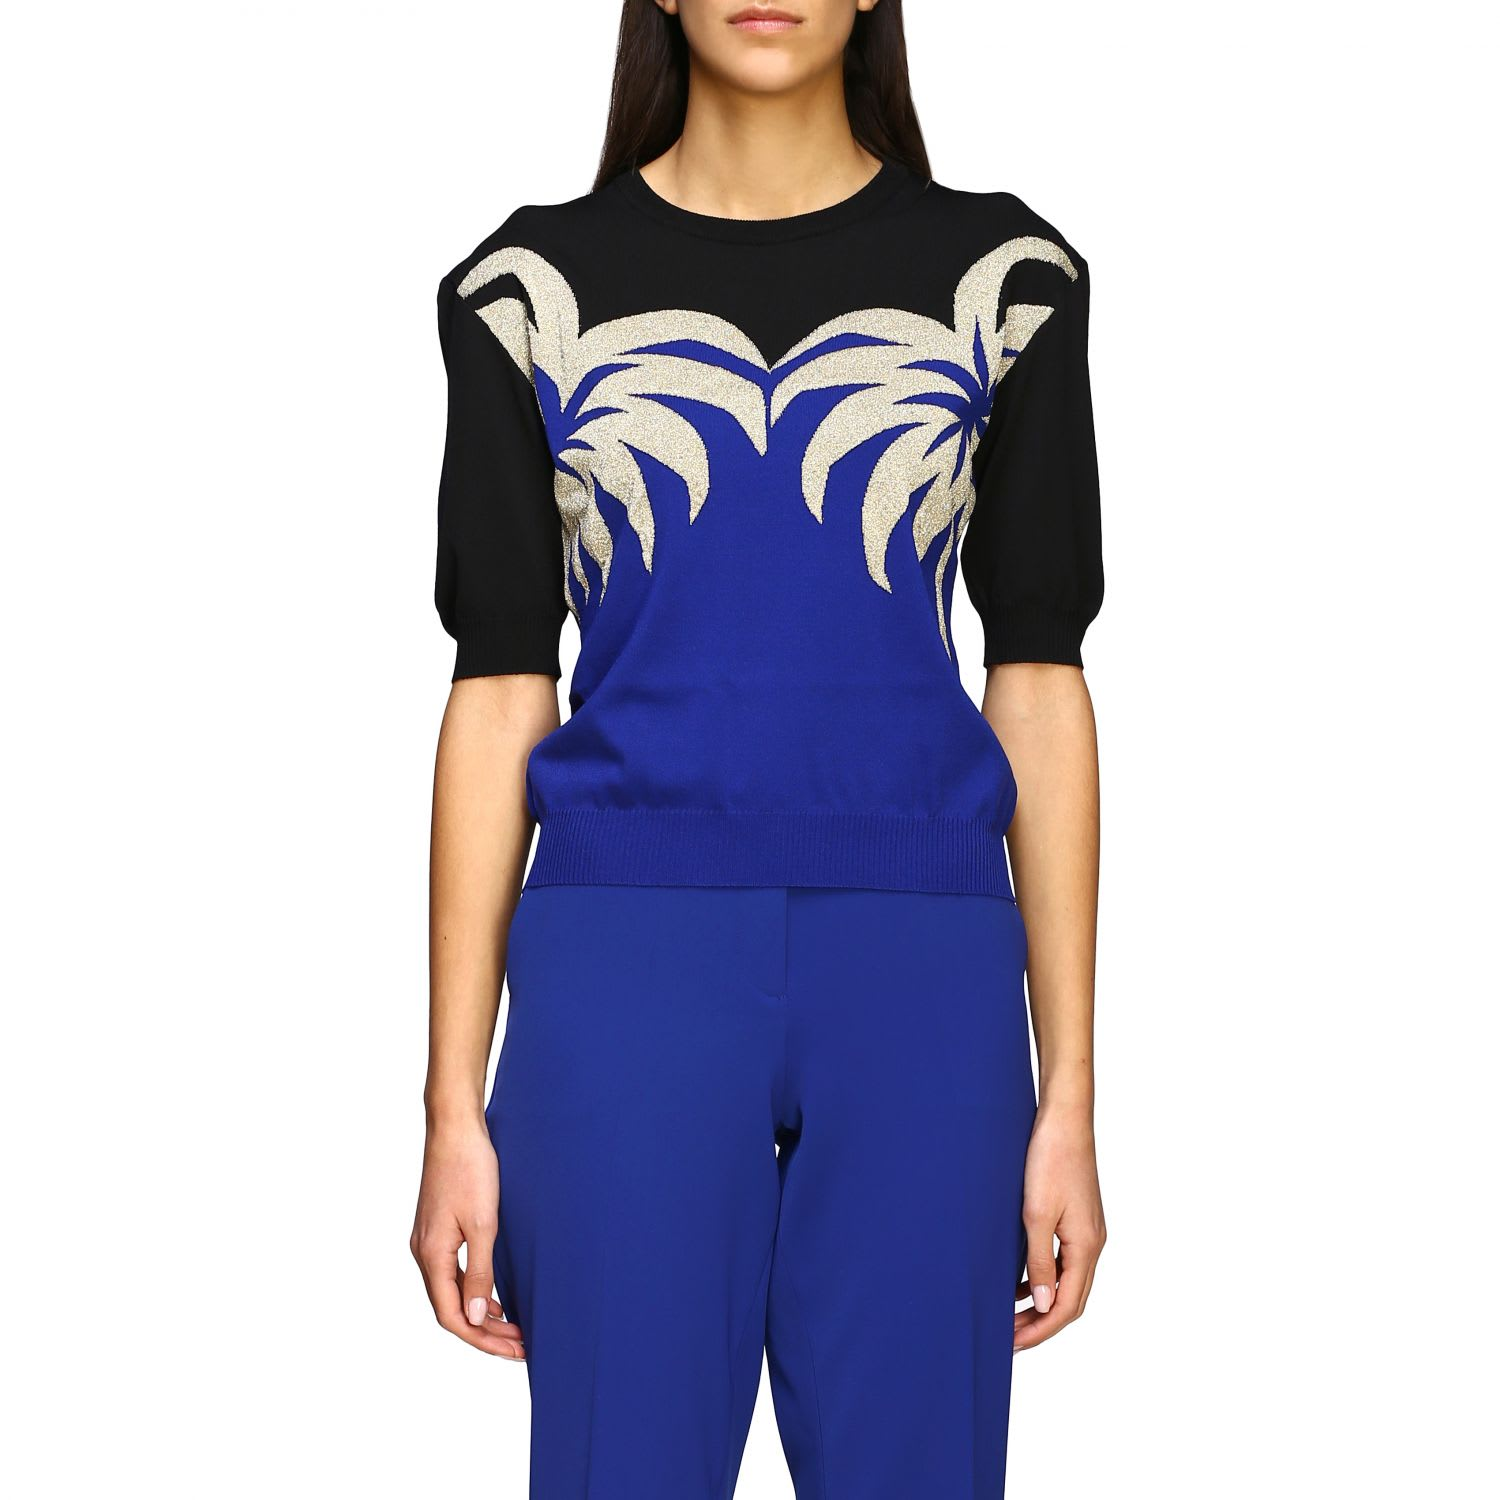 Boutique Moschino Sweater Boutique Moschino Top With Palm Trees